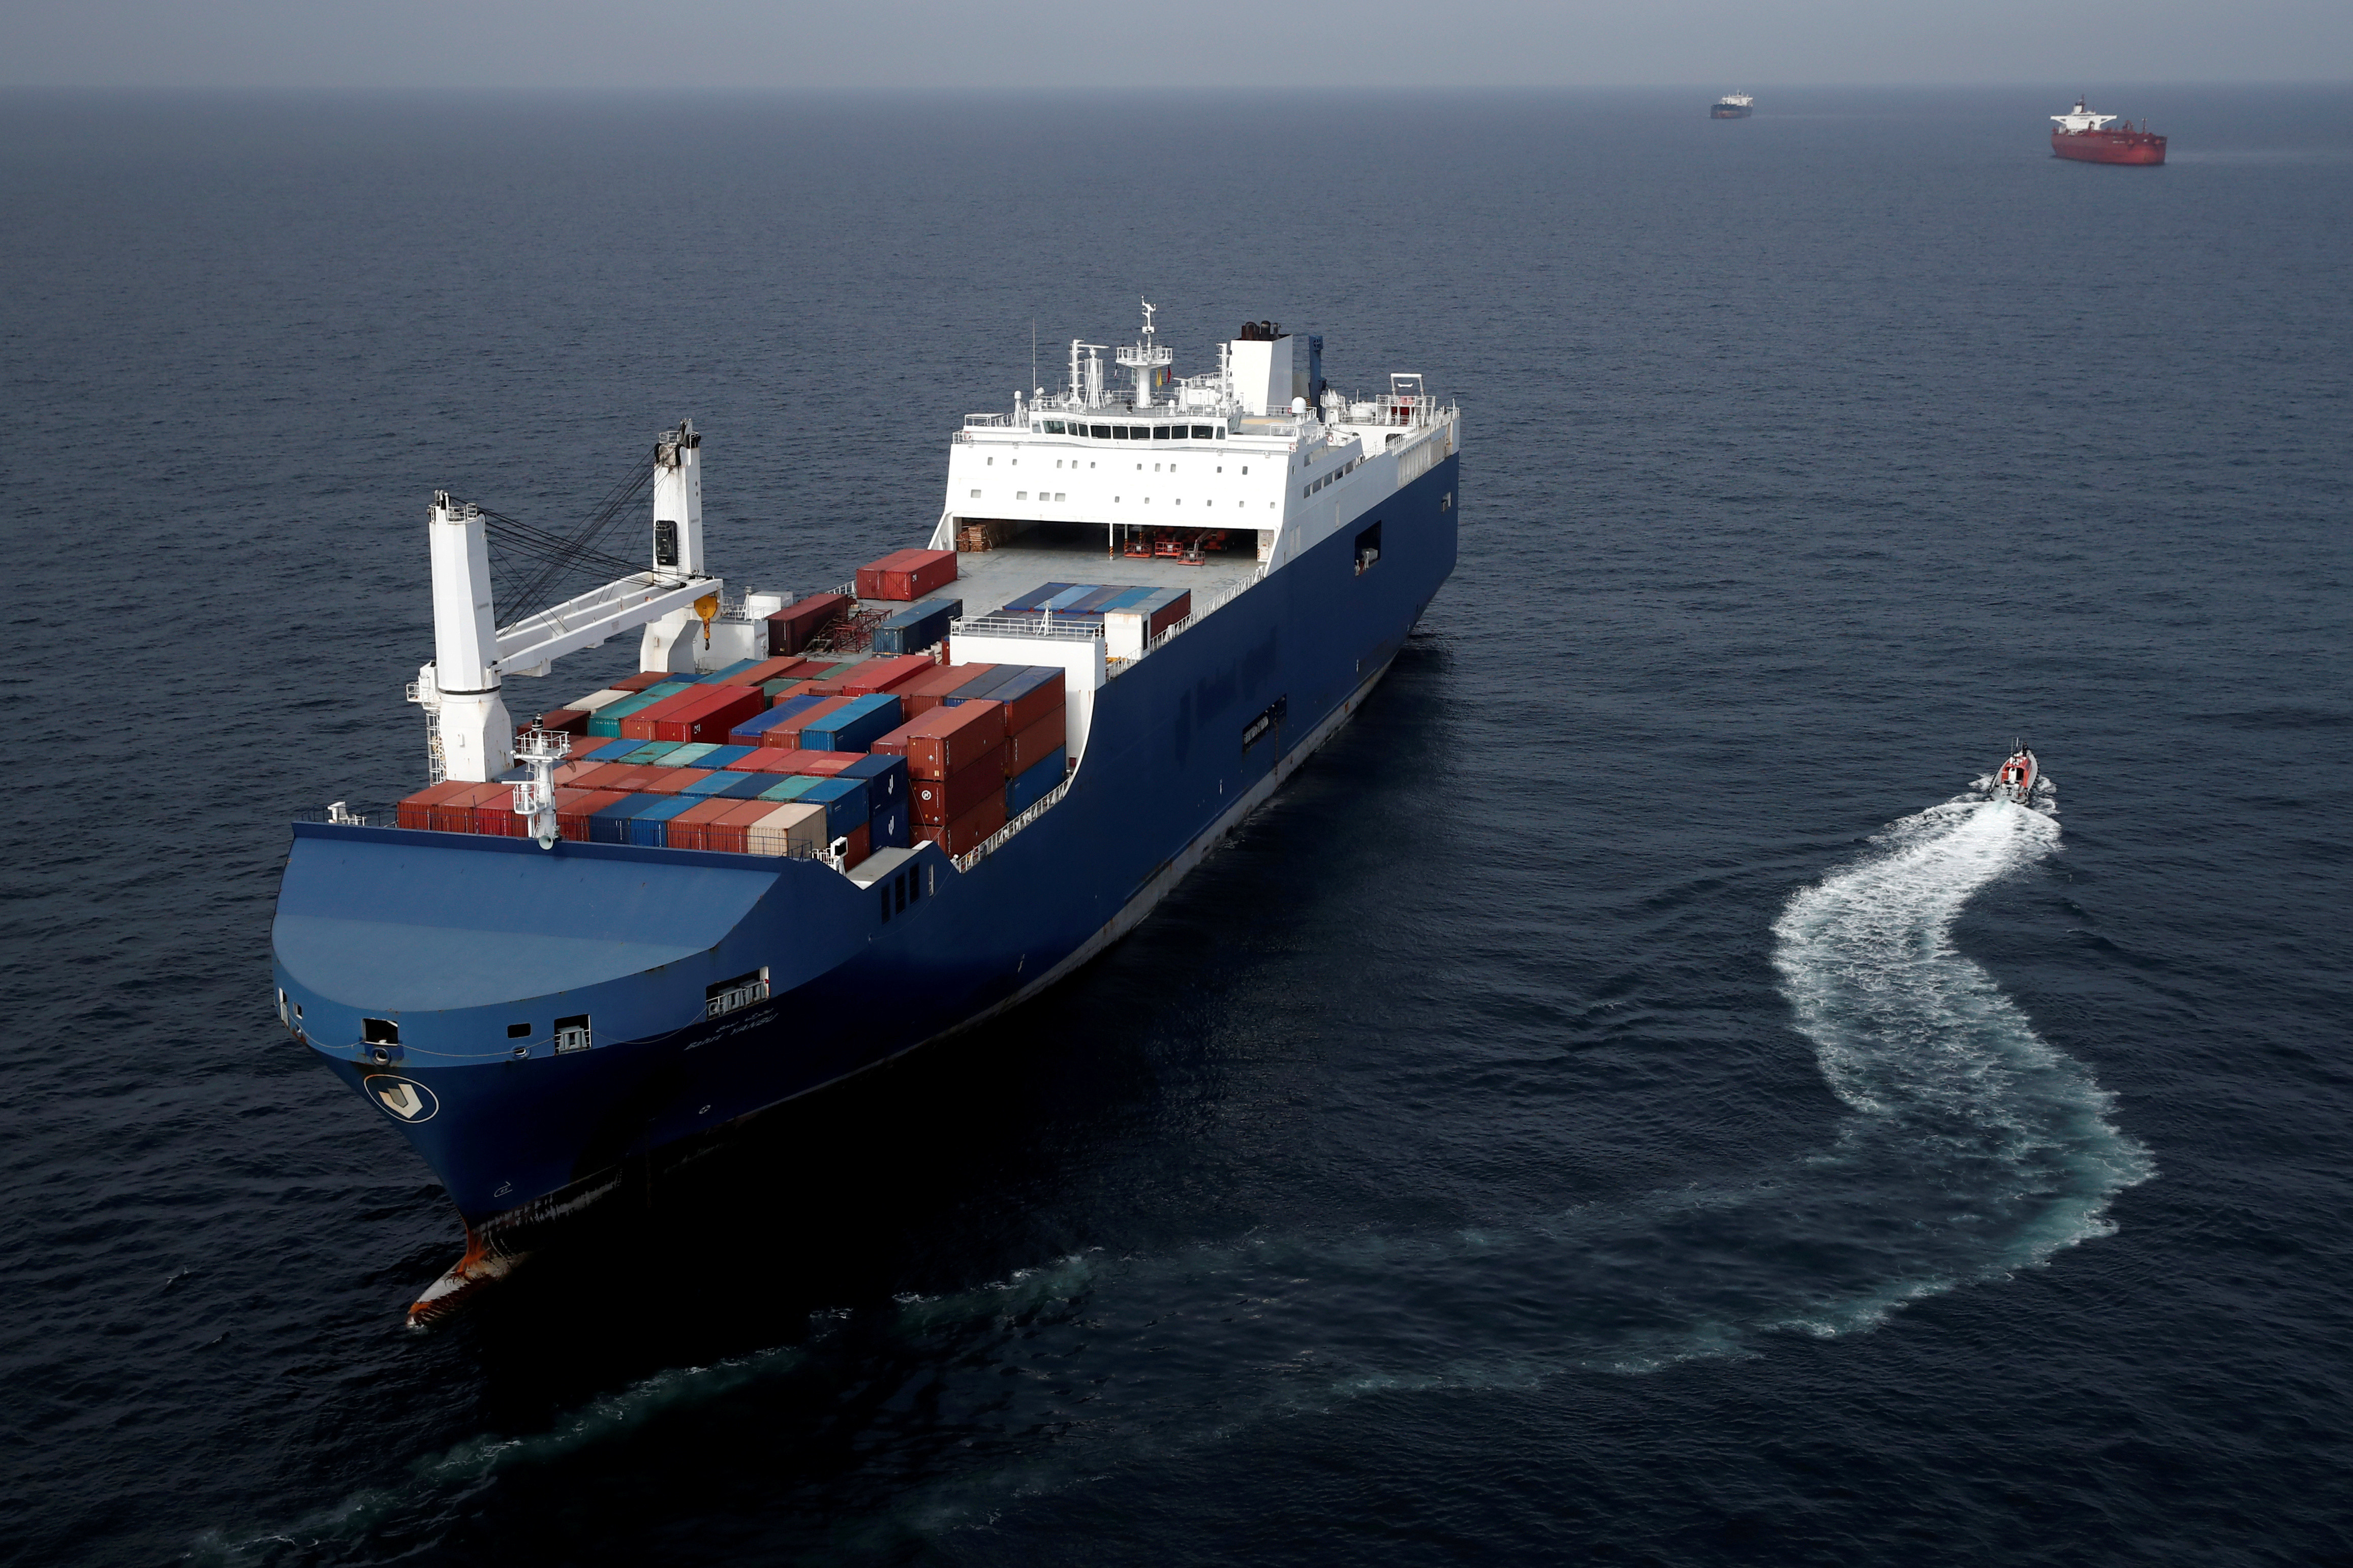 a cargo ship sails on water